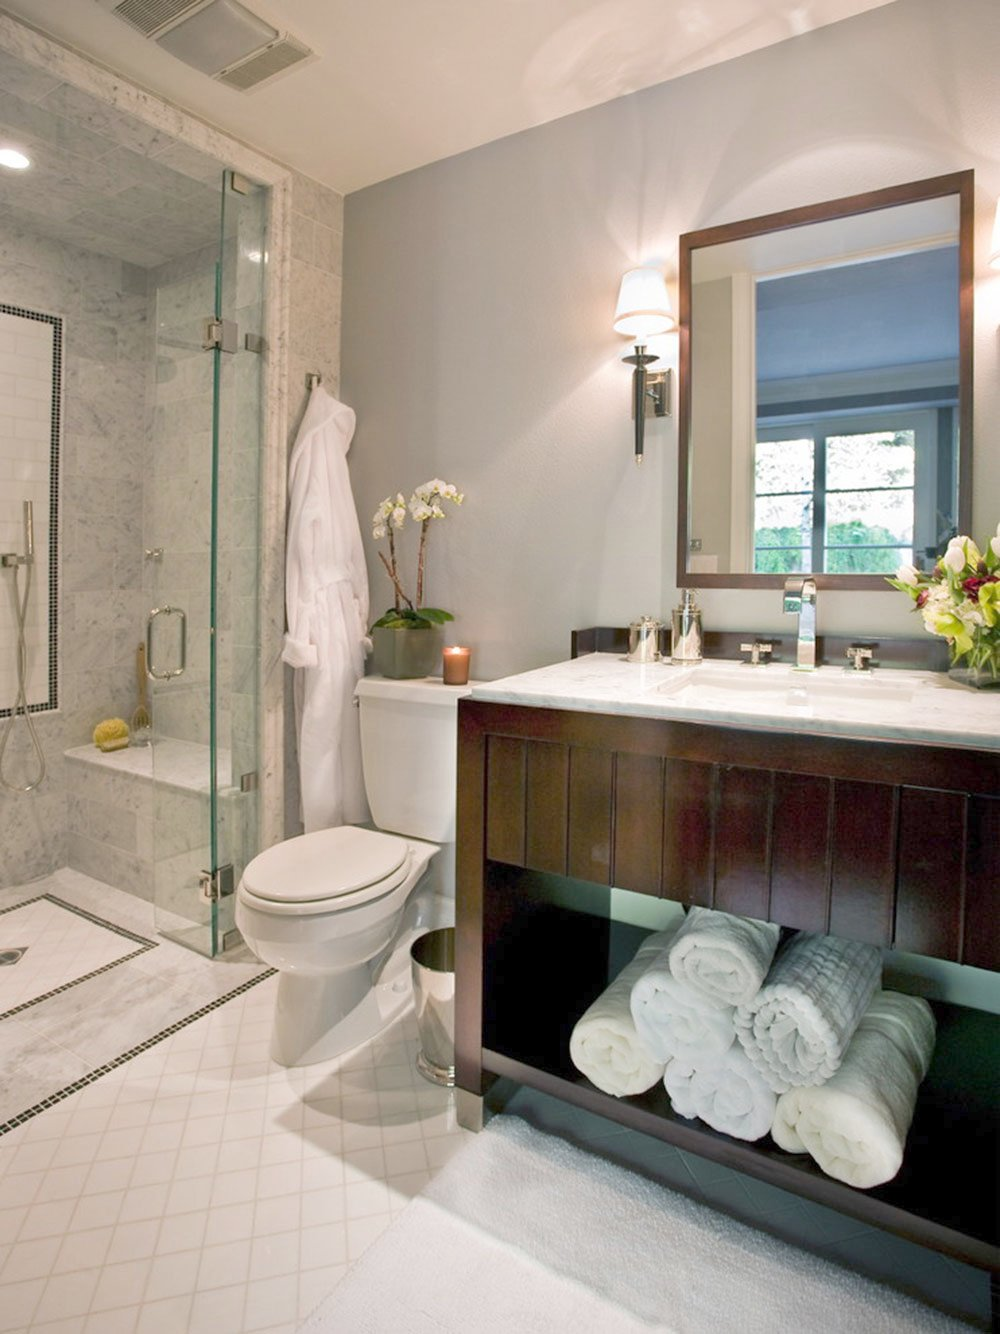 Nice Guest Bathroom Design   Modern Bathroom Ideas To Impress Your Guests1 Powder Room Ideas